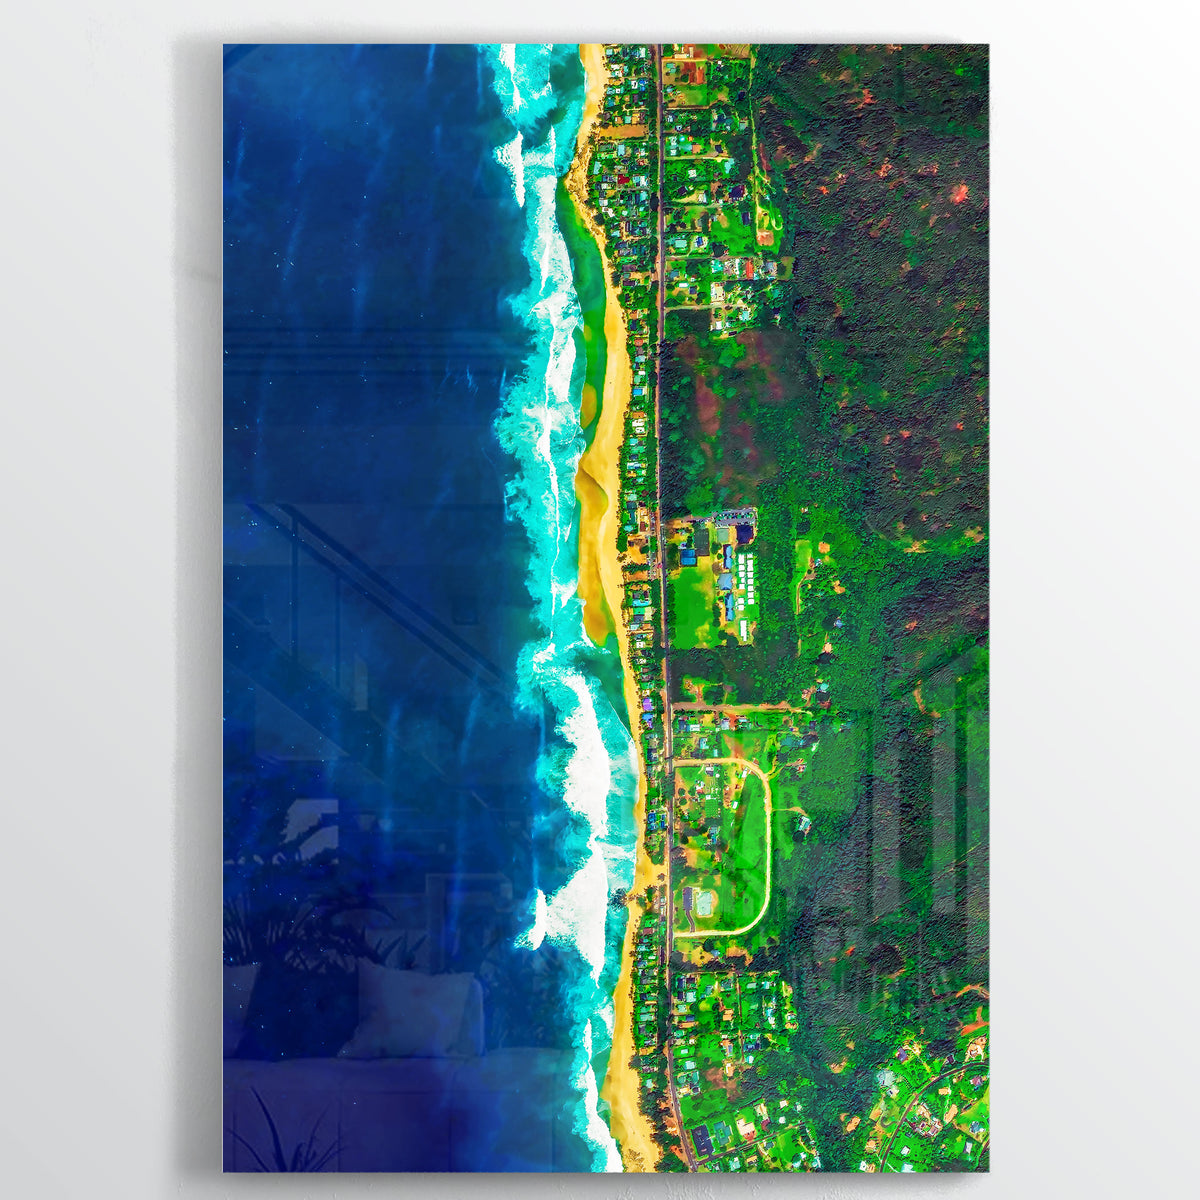 2208 Earth Photography - Floating Acrylic Art - Point Two Design